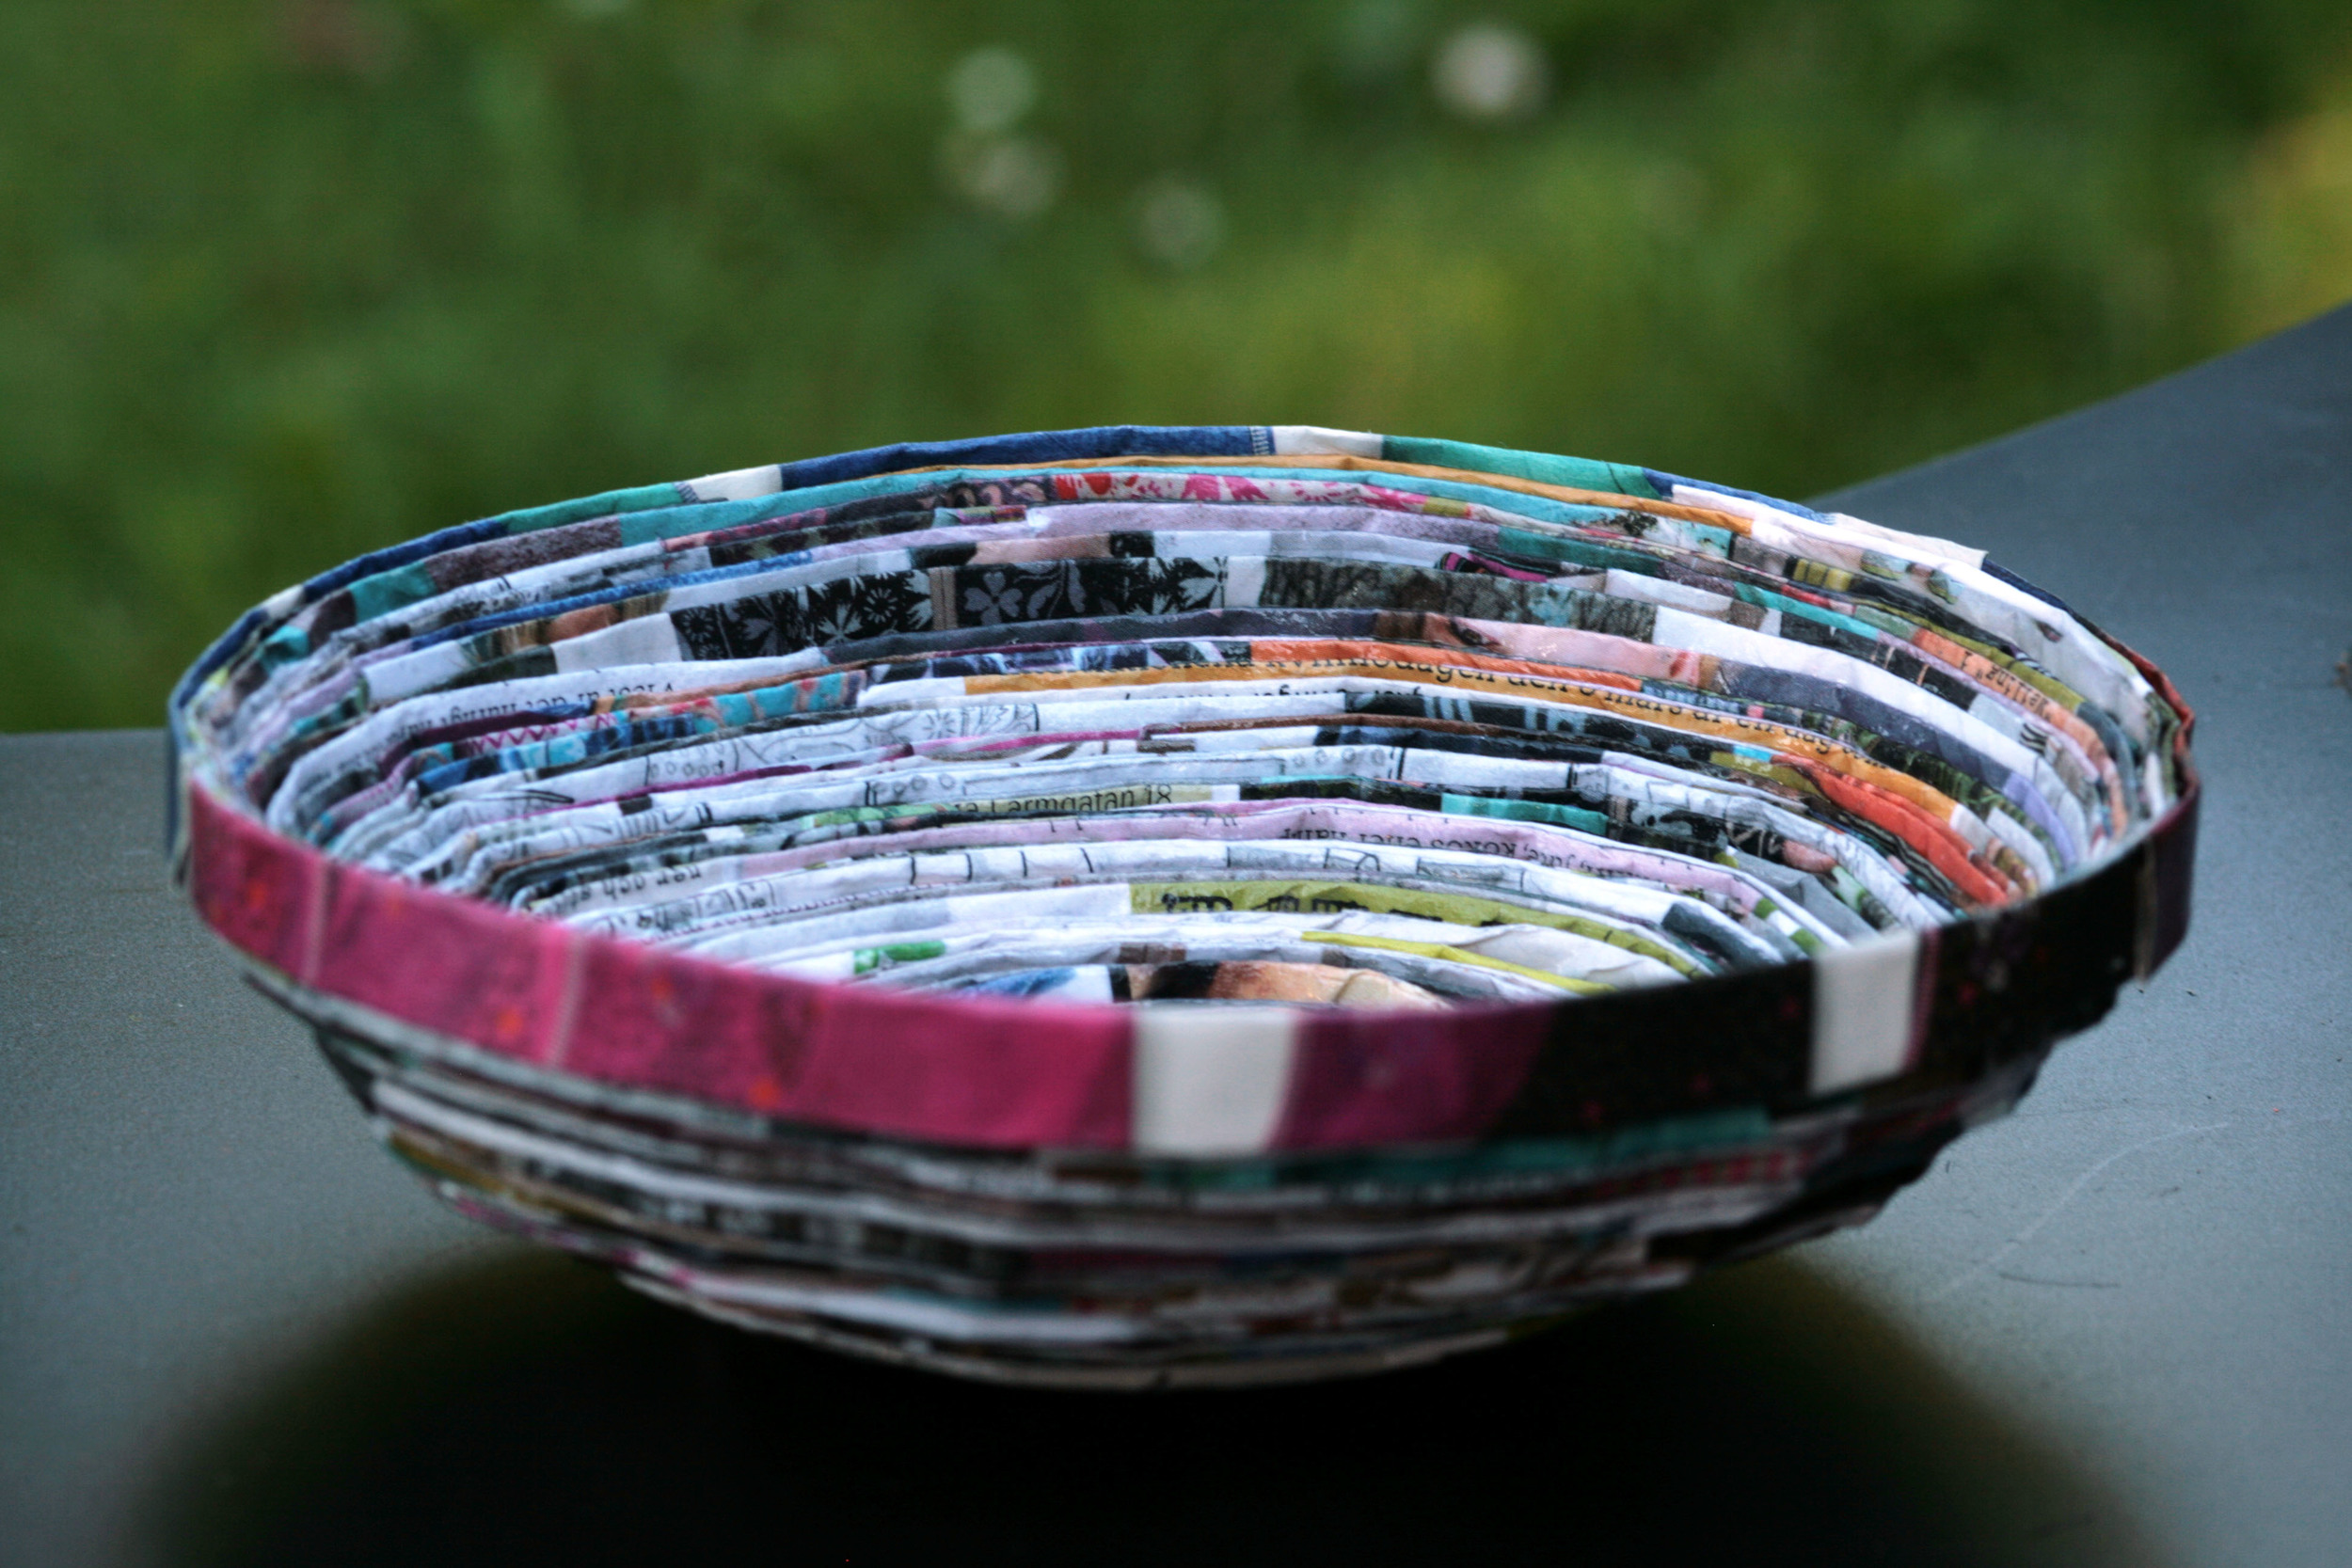 Bowl made of a magazine.